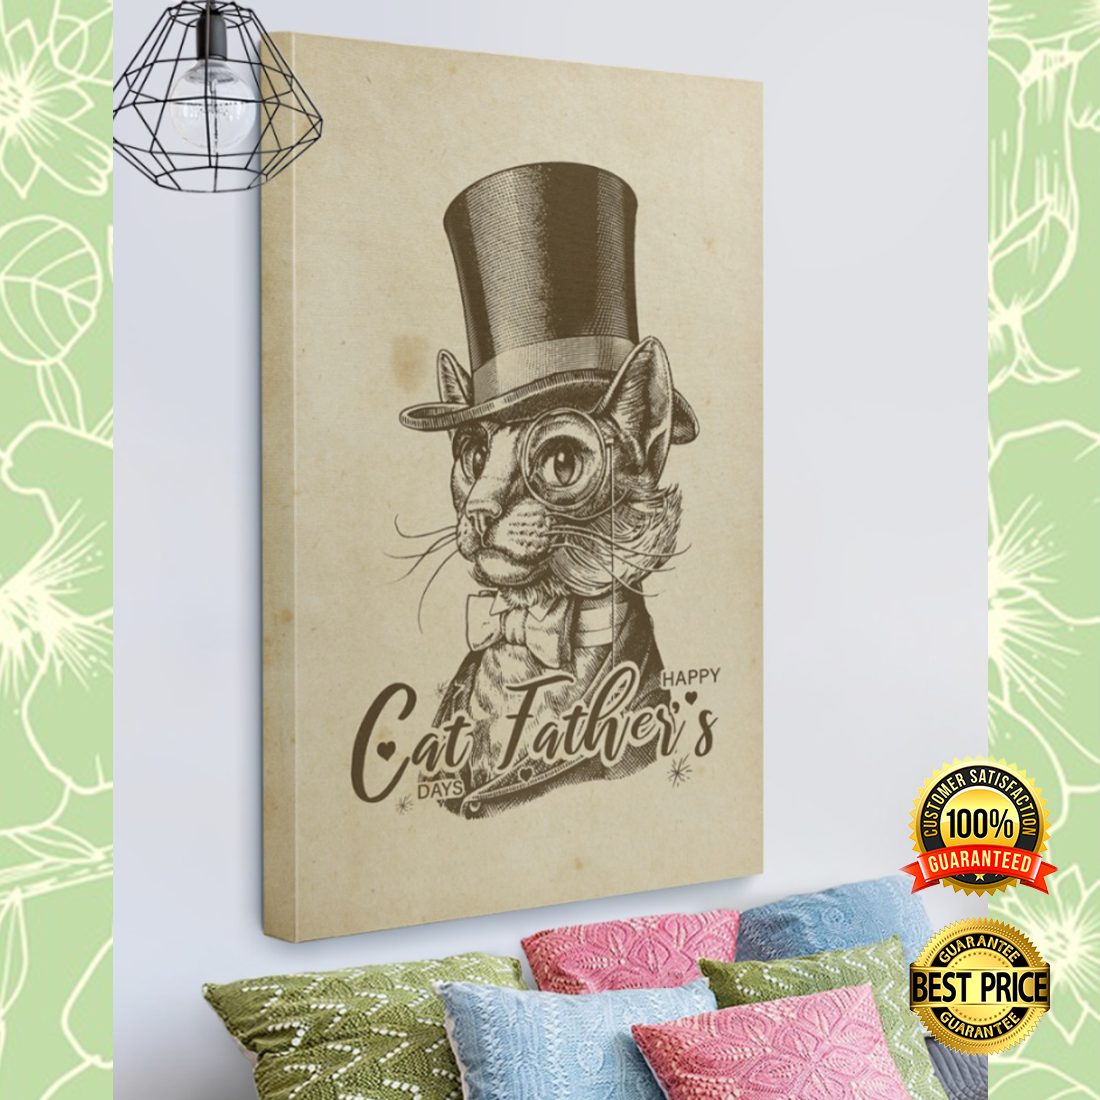 HAPPY CAT FATHER'S DAYS CANVAS 5